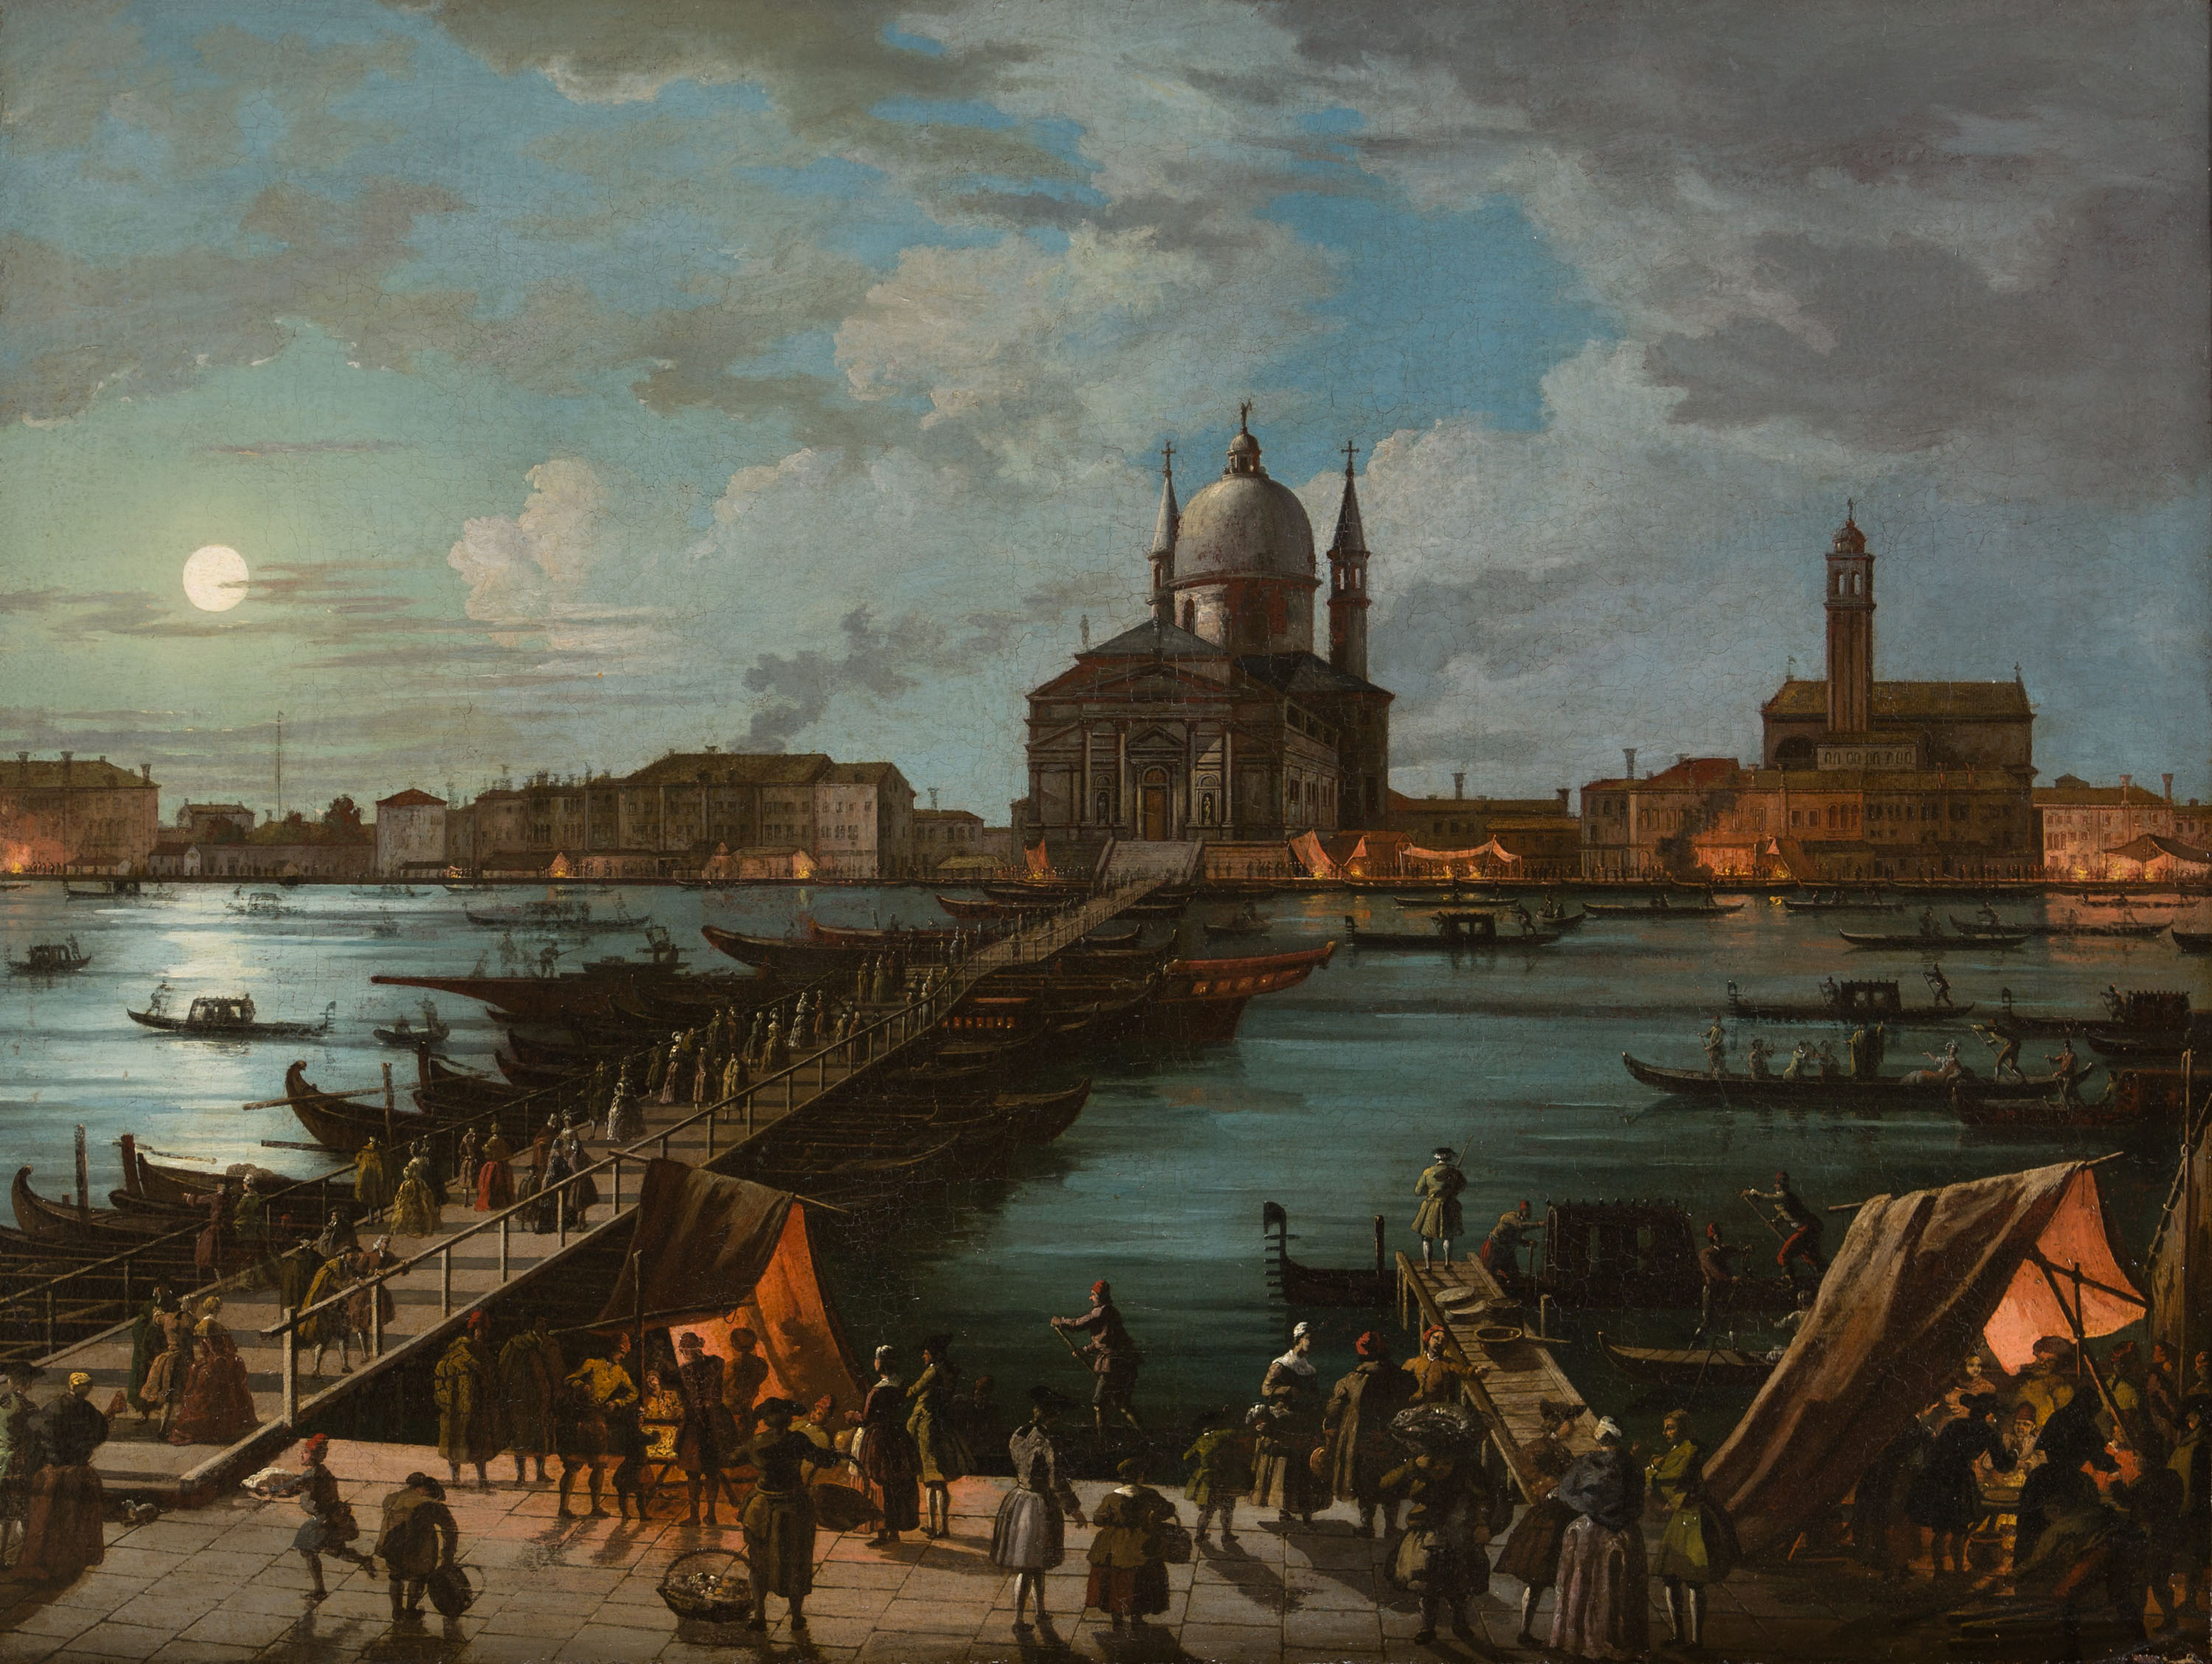 A View in Venice across the Guidecca on the Feast of the Redentore, Circle of Giuseppe-Bernadino Bison (1762-1844).